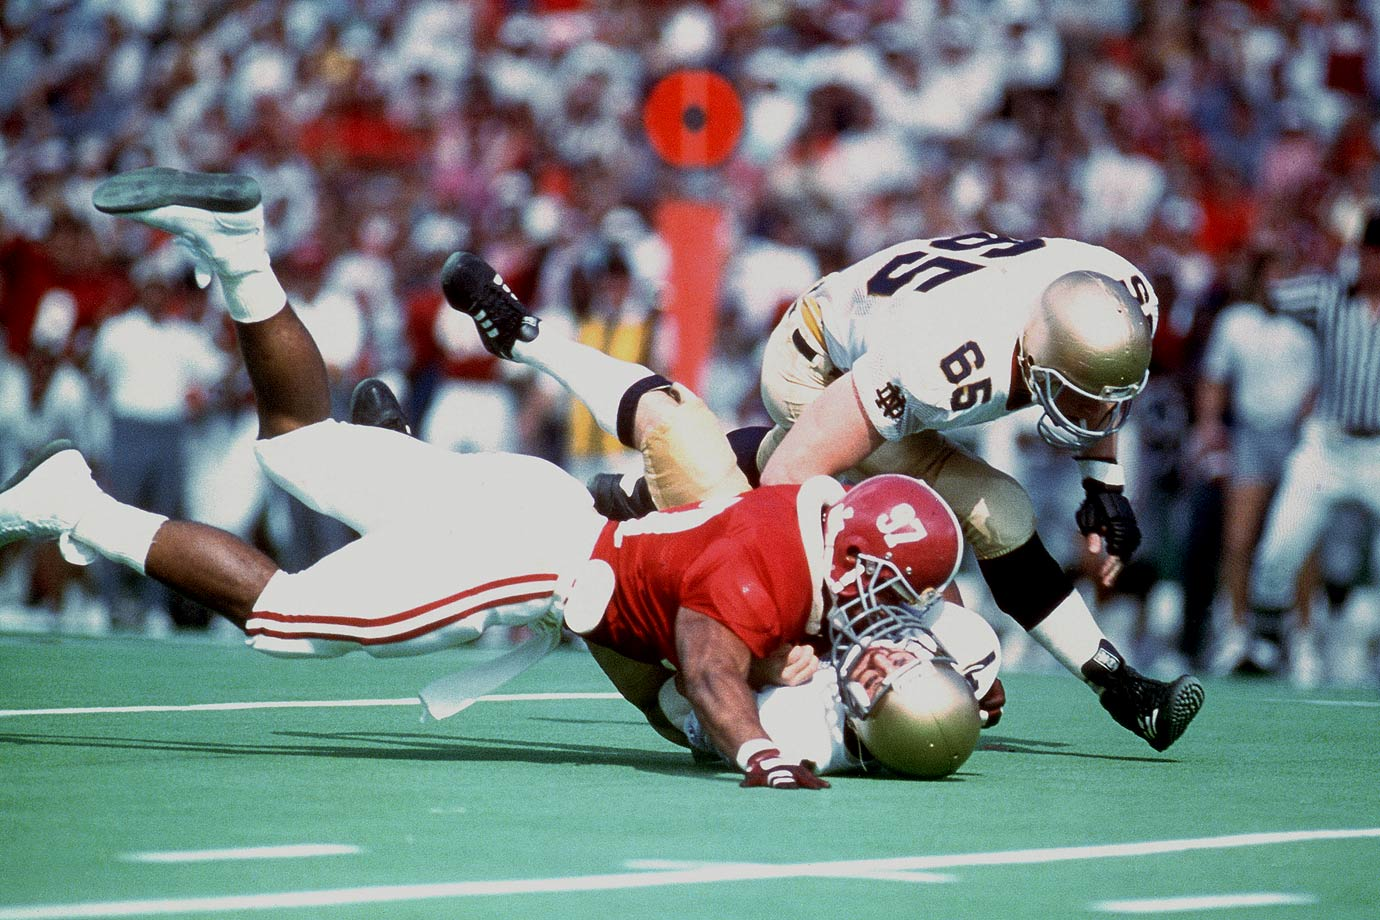 Bennett was elected as Alabama's ''Player of the Decade'' in the 1980s with good reason: He was a two-time All-America (1985 and '86) and won the Lombardi Award in 1986. — Runner-up: Tommie Harris, DT, Oklahoma (2001-03)